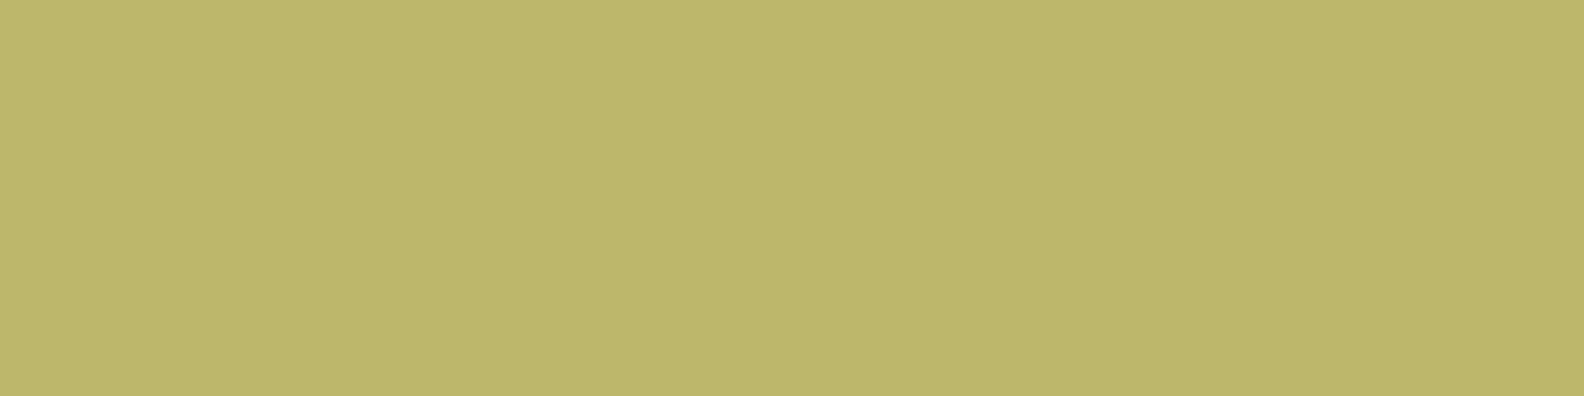 1584x396 Dark Khaki Solid Color Background